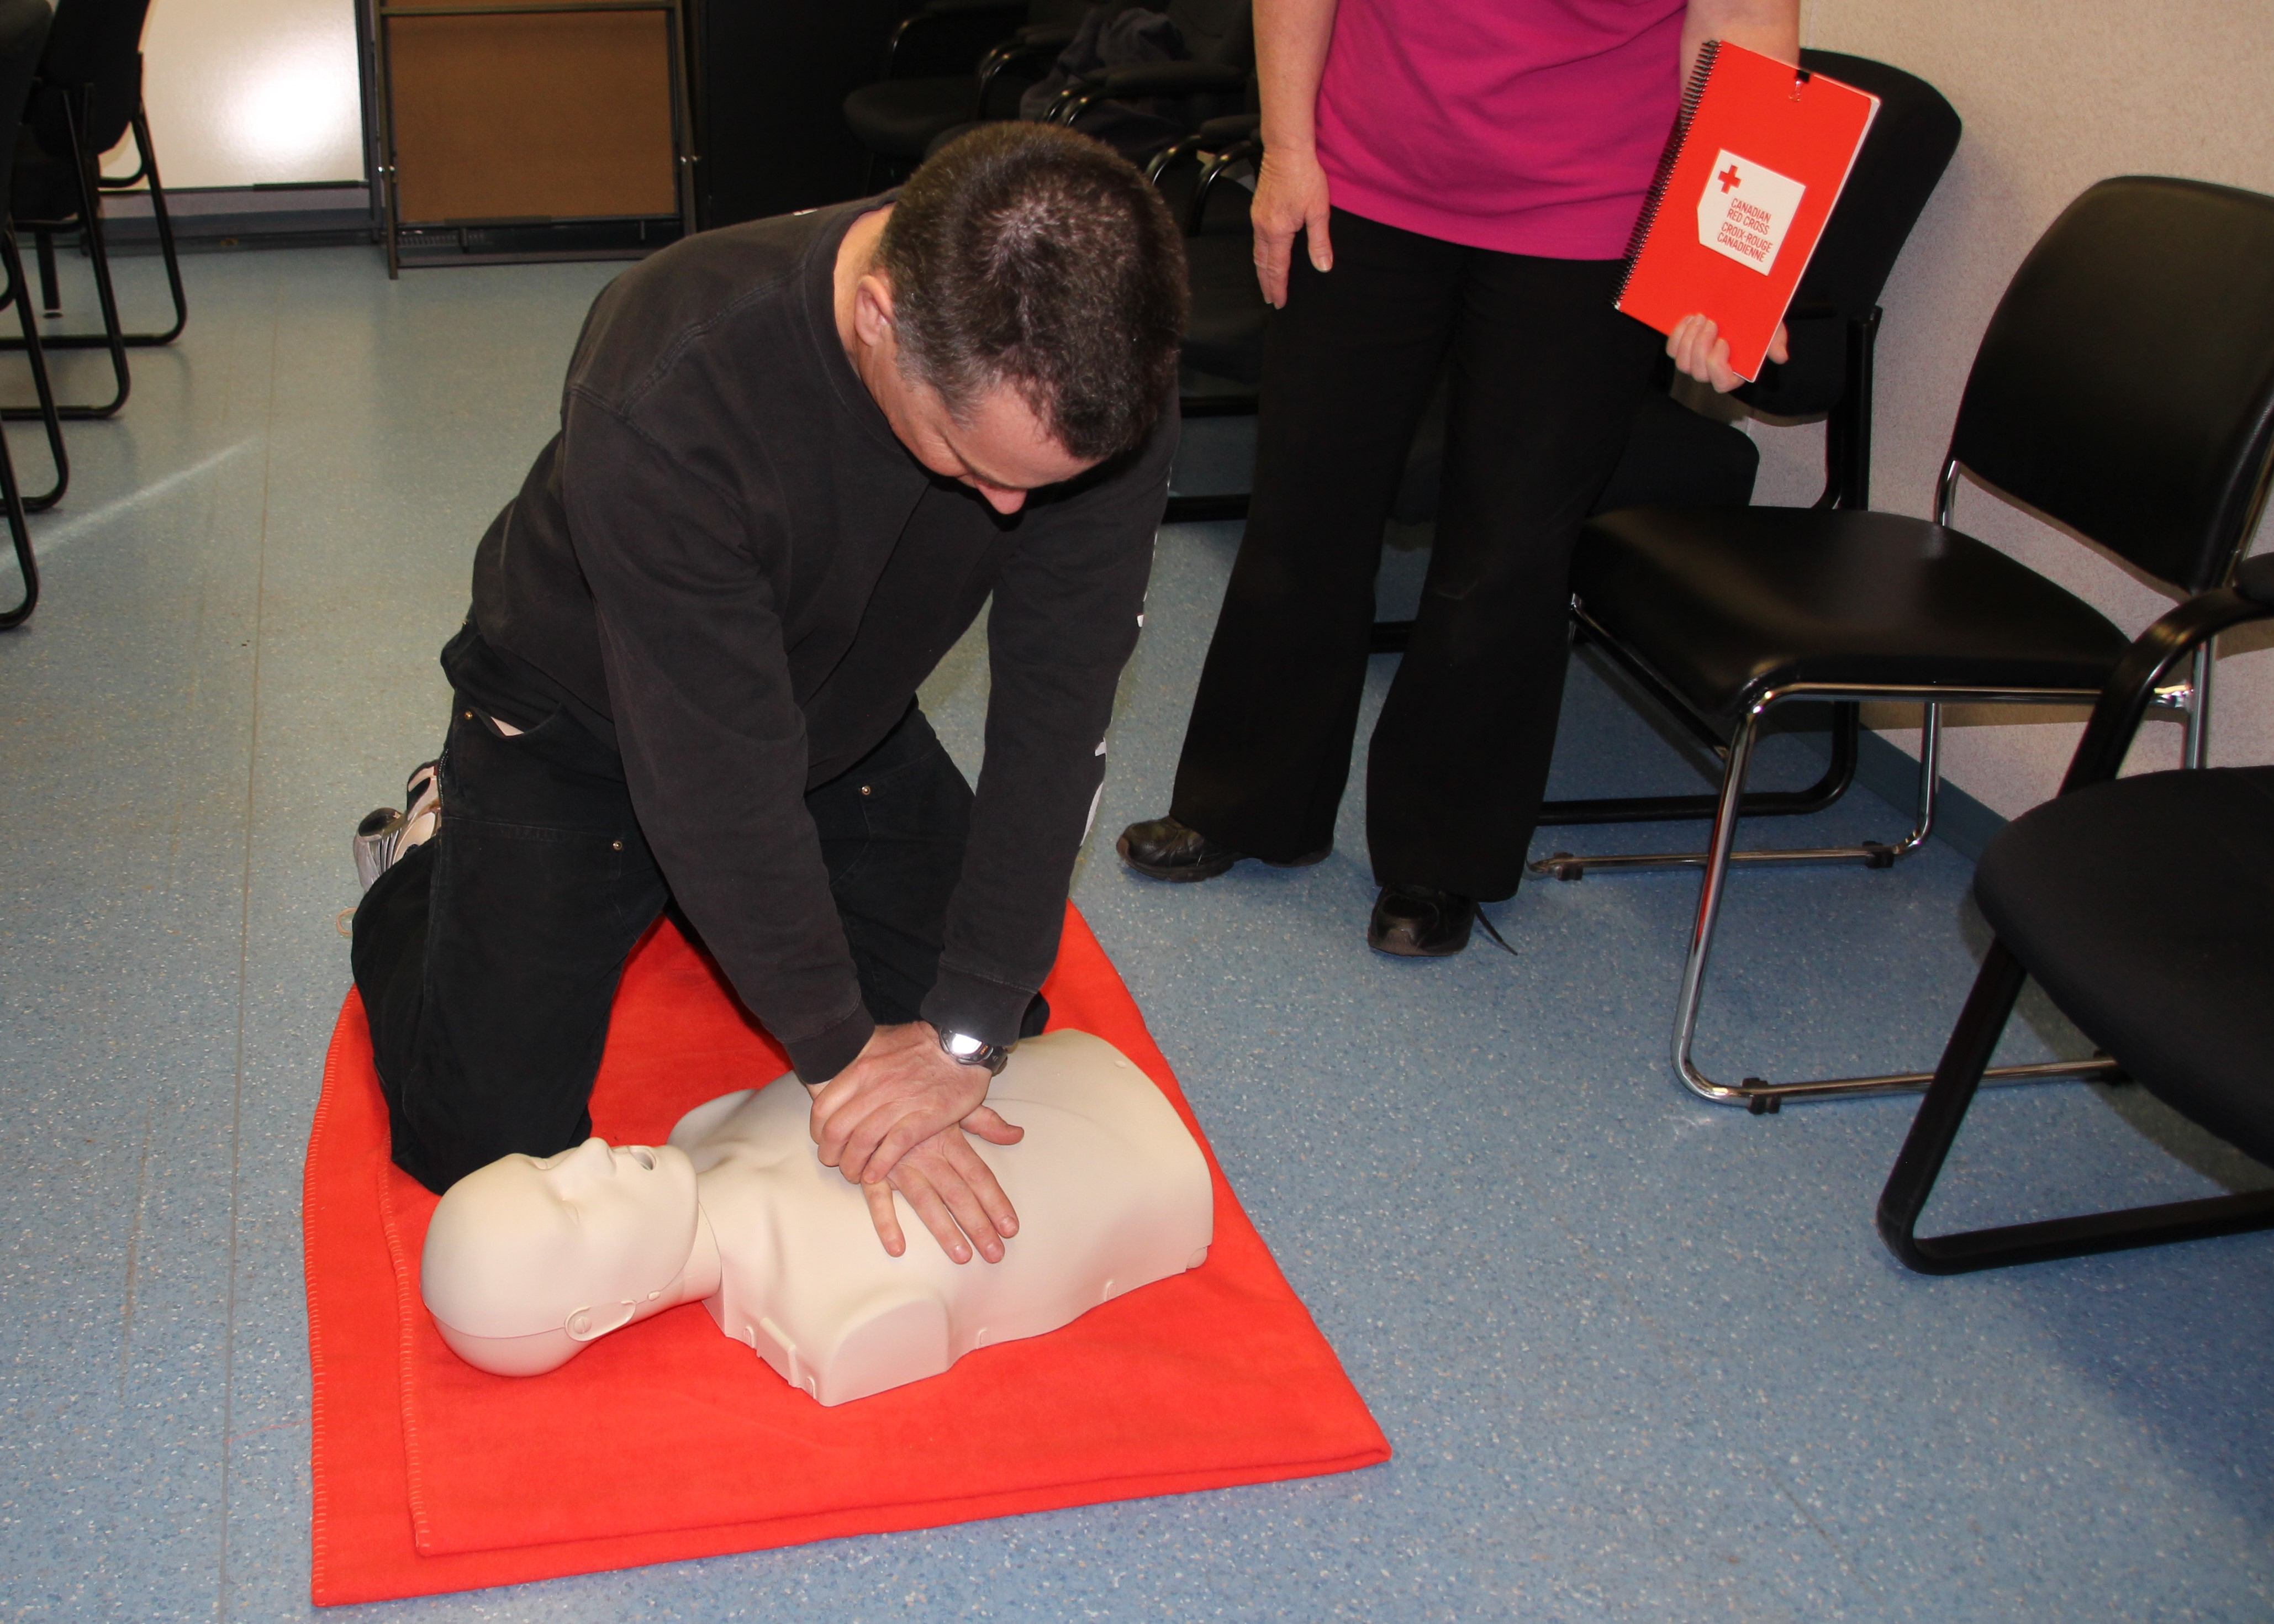 Stephen Tilley, Geological Technician practicing CPR